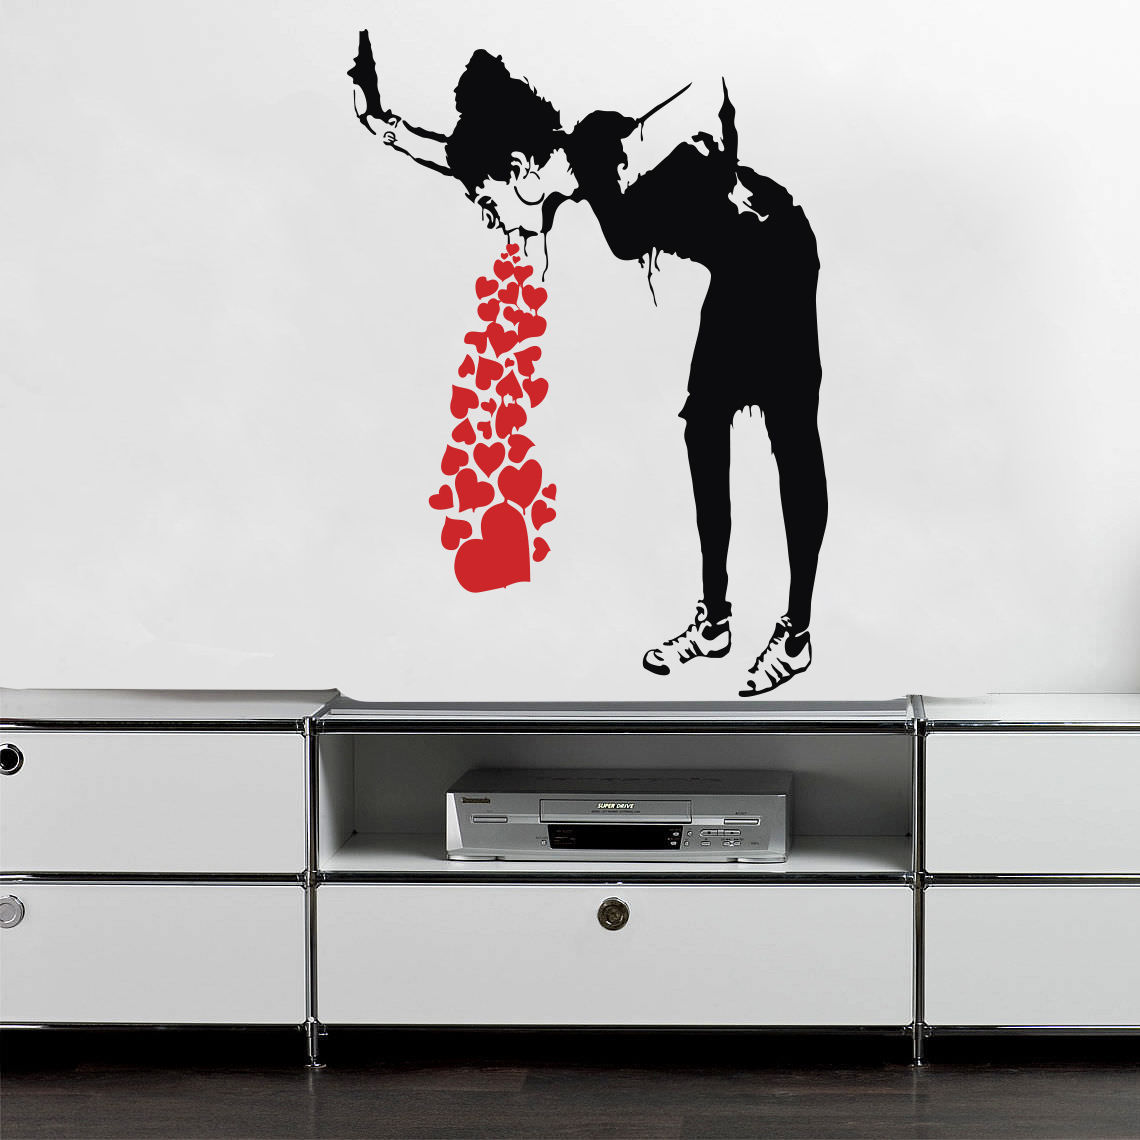 G125 Banksy Barfy Girl Wall Decal sticker vinyl street art graffiti жатын бөлме декор Creative bedroom decoration wall sticker